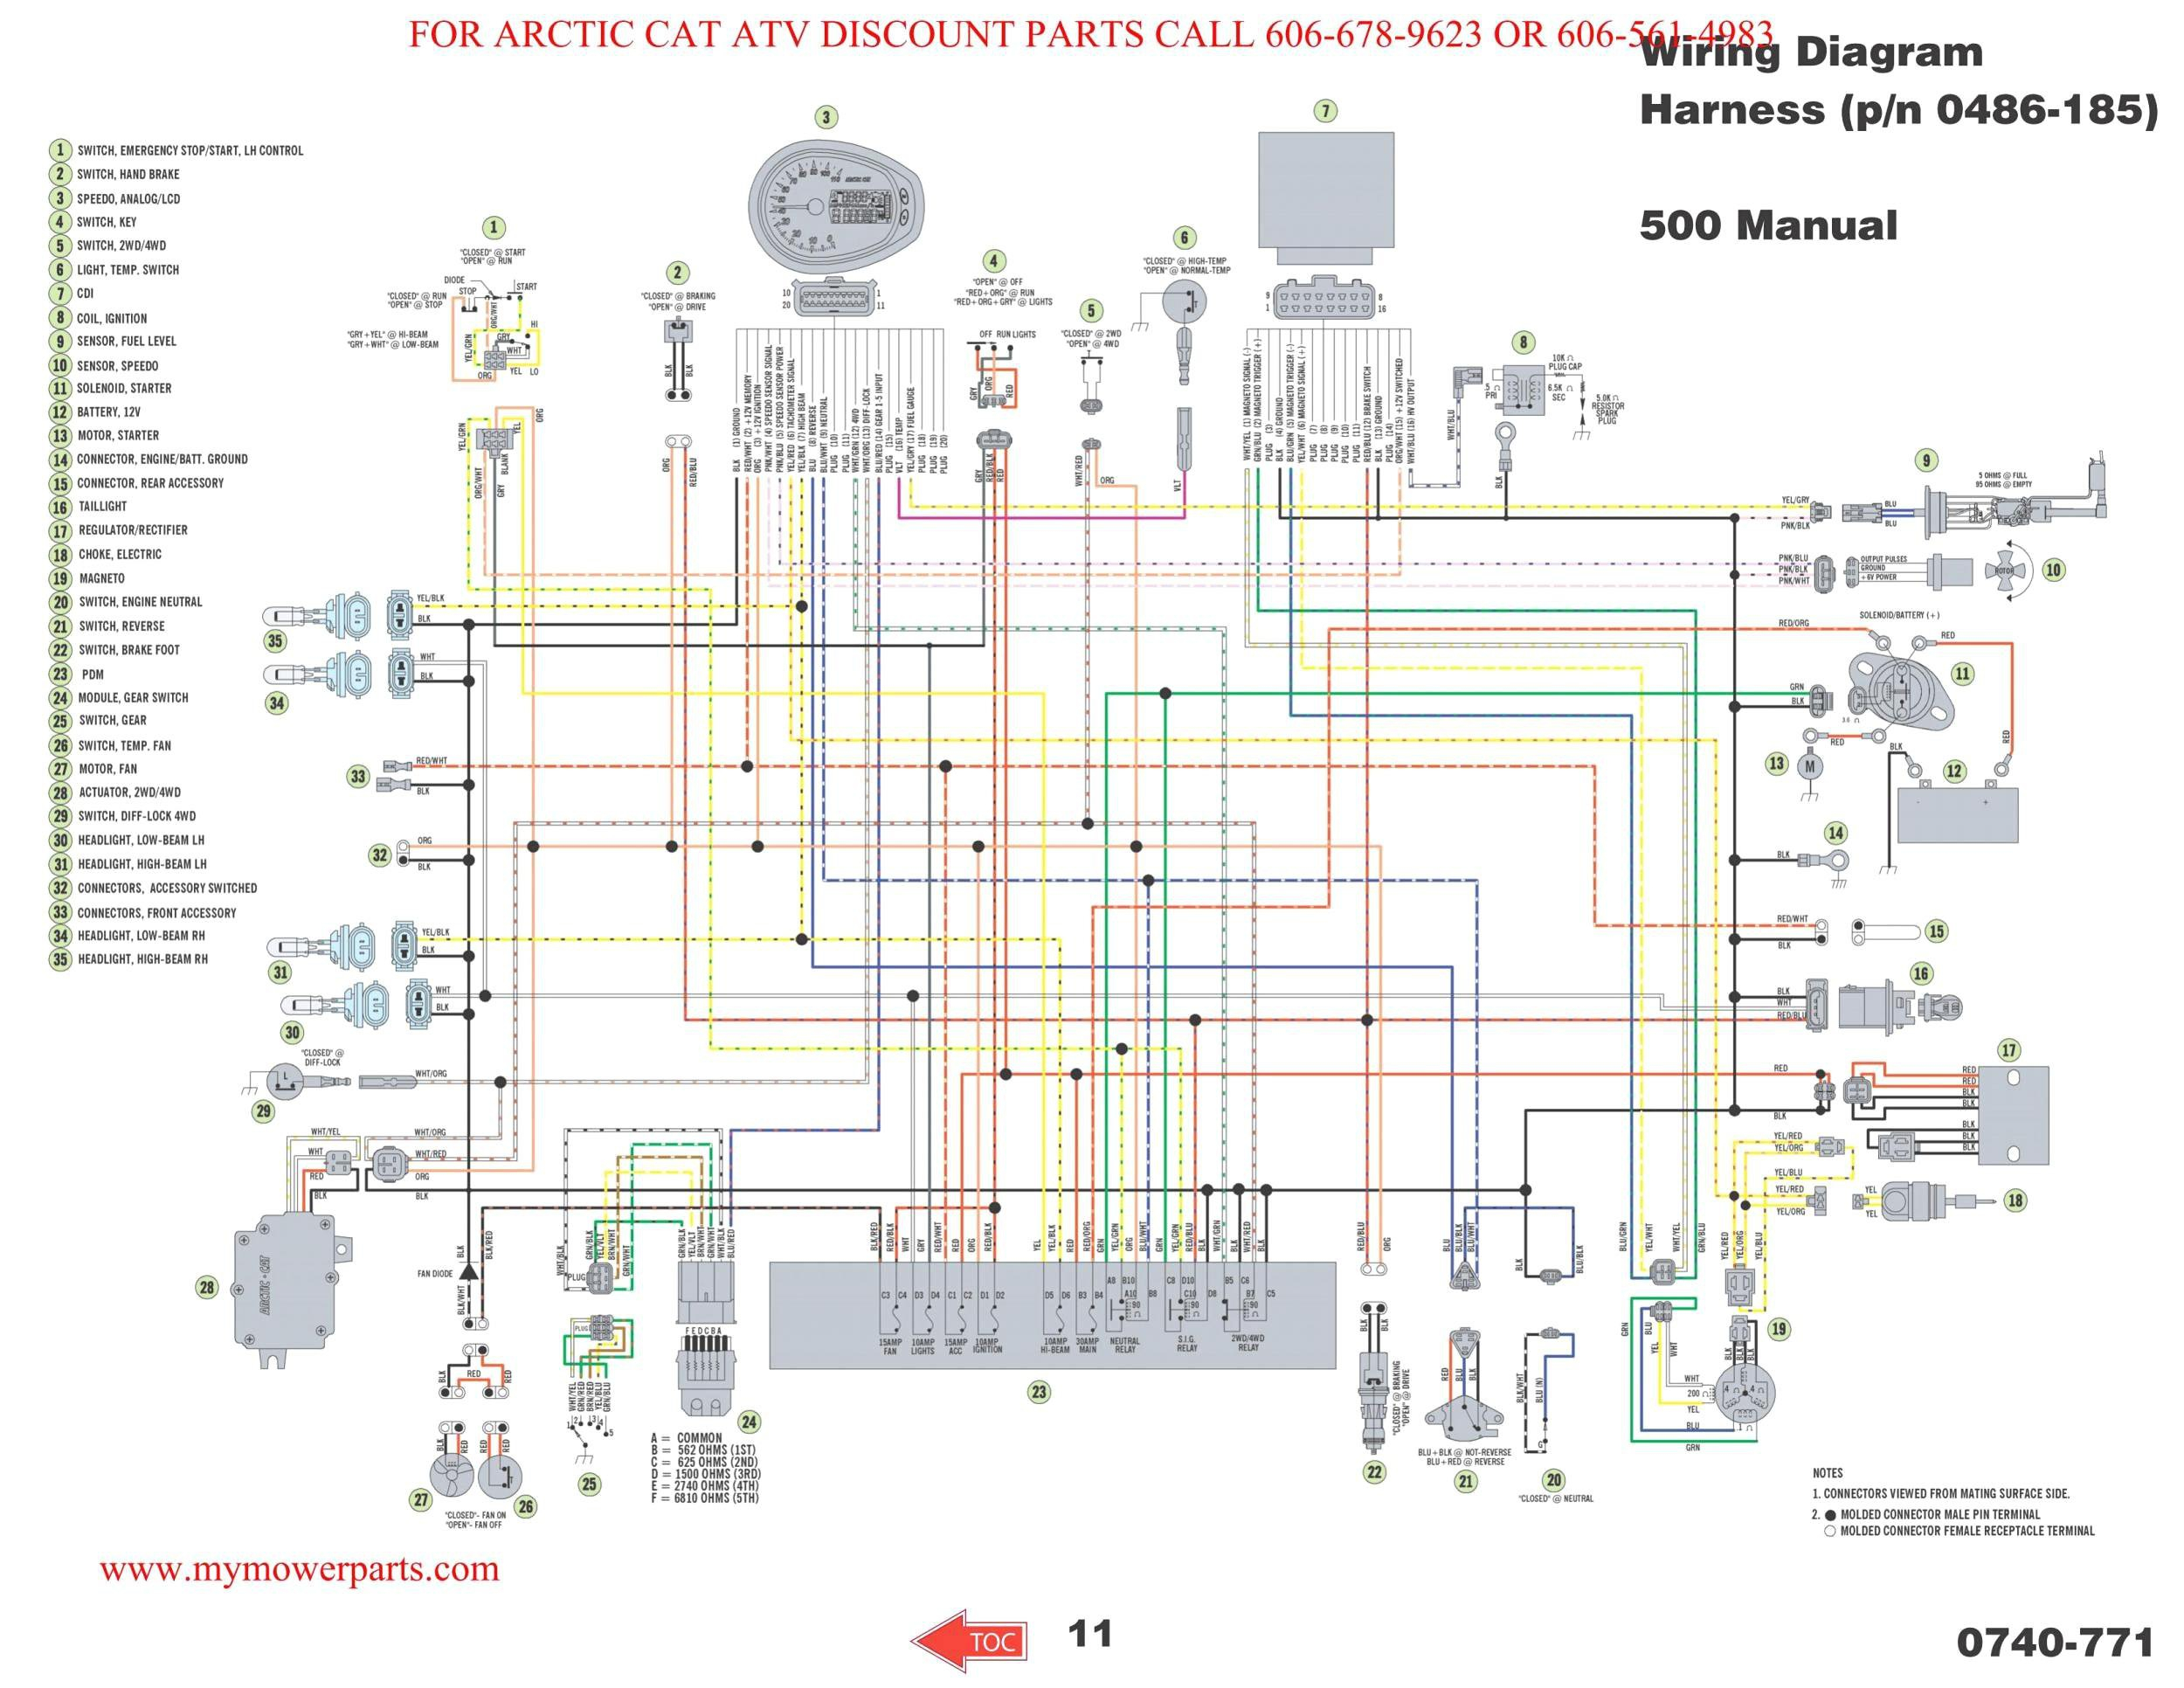 wrg 9424] 09 rzr 800 wiring diagram